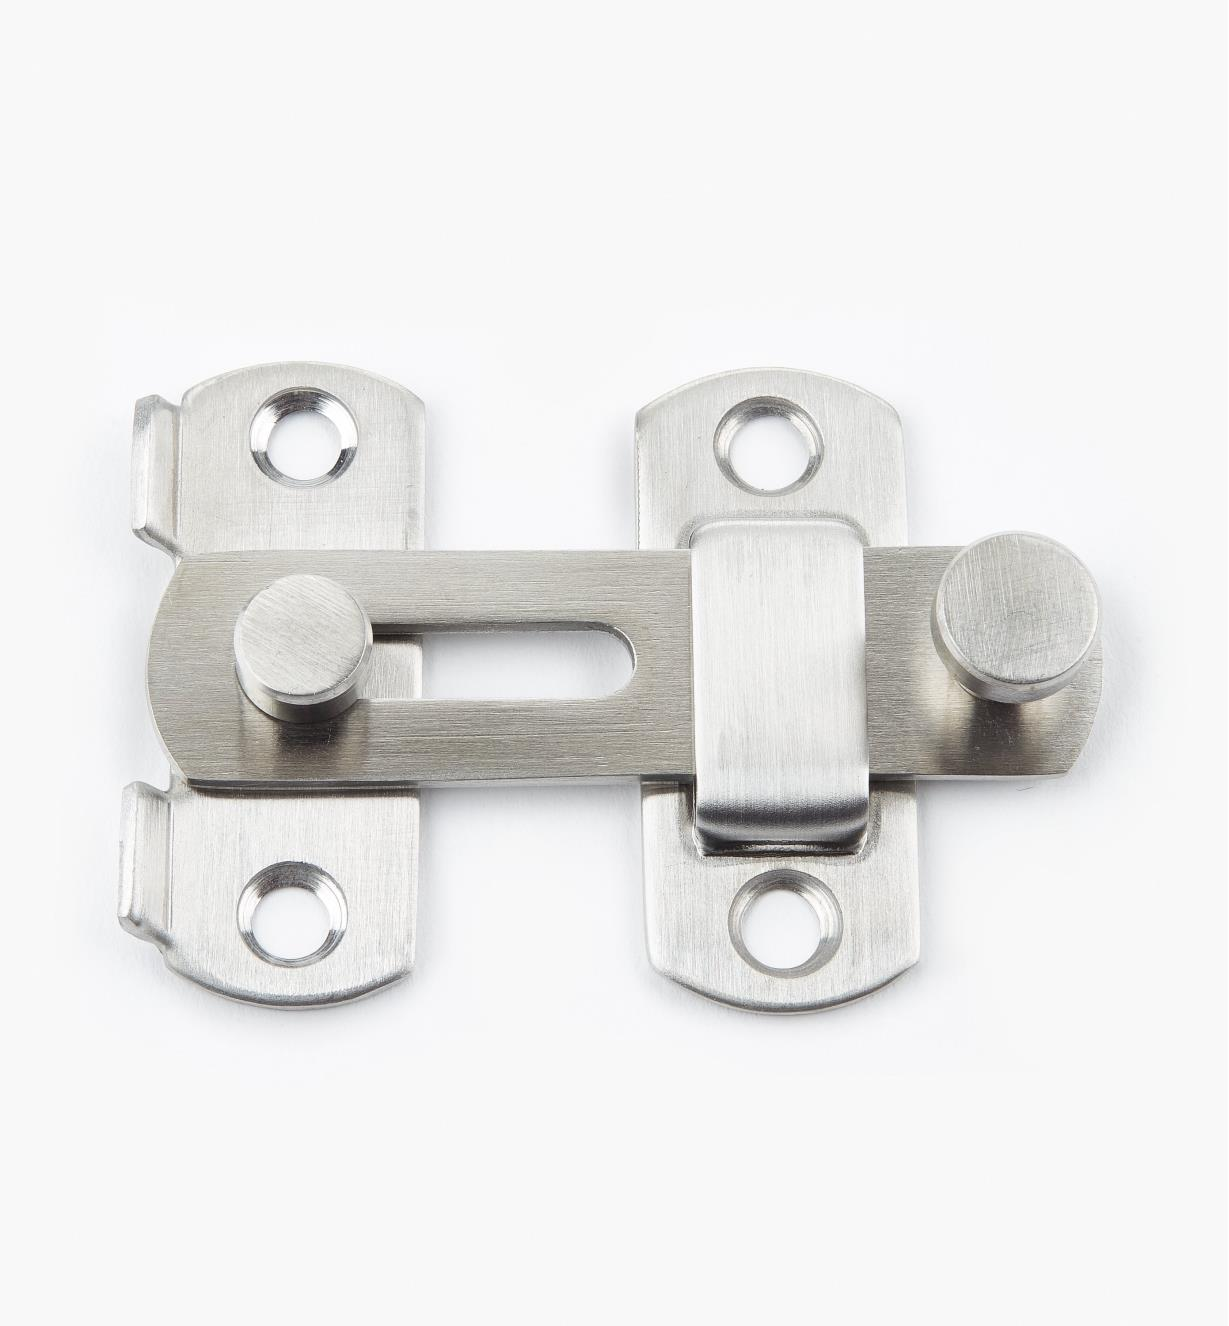 01W6320 - Small Stainless-Steel Shutter Latch